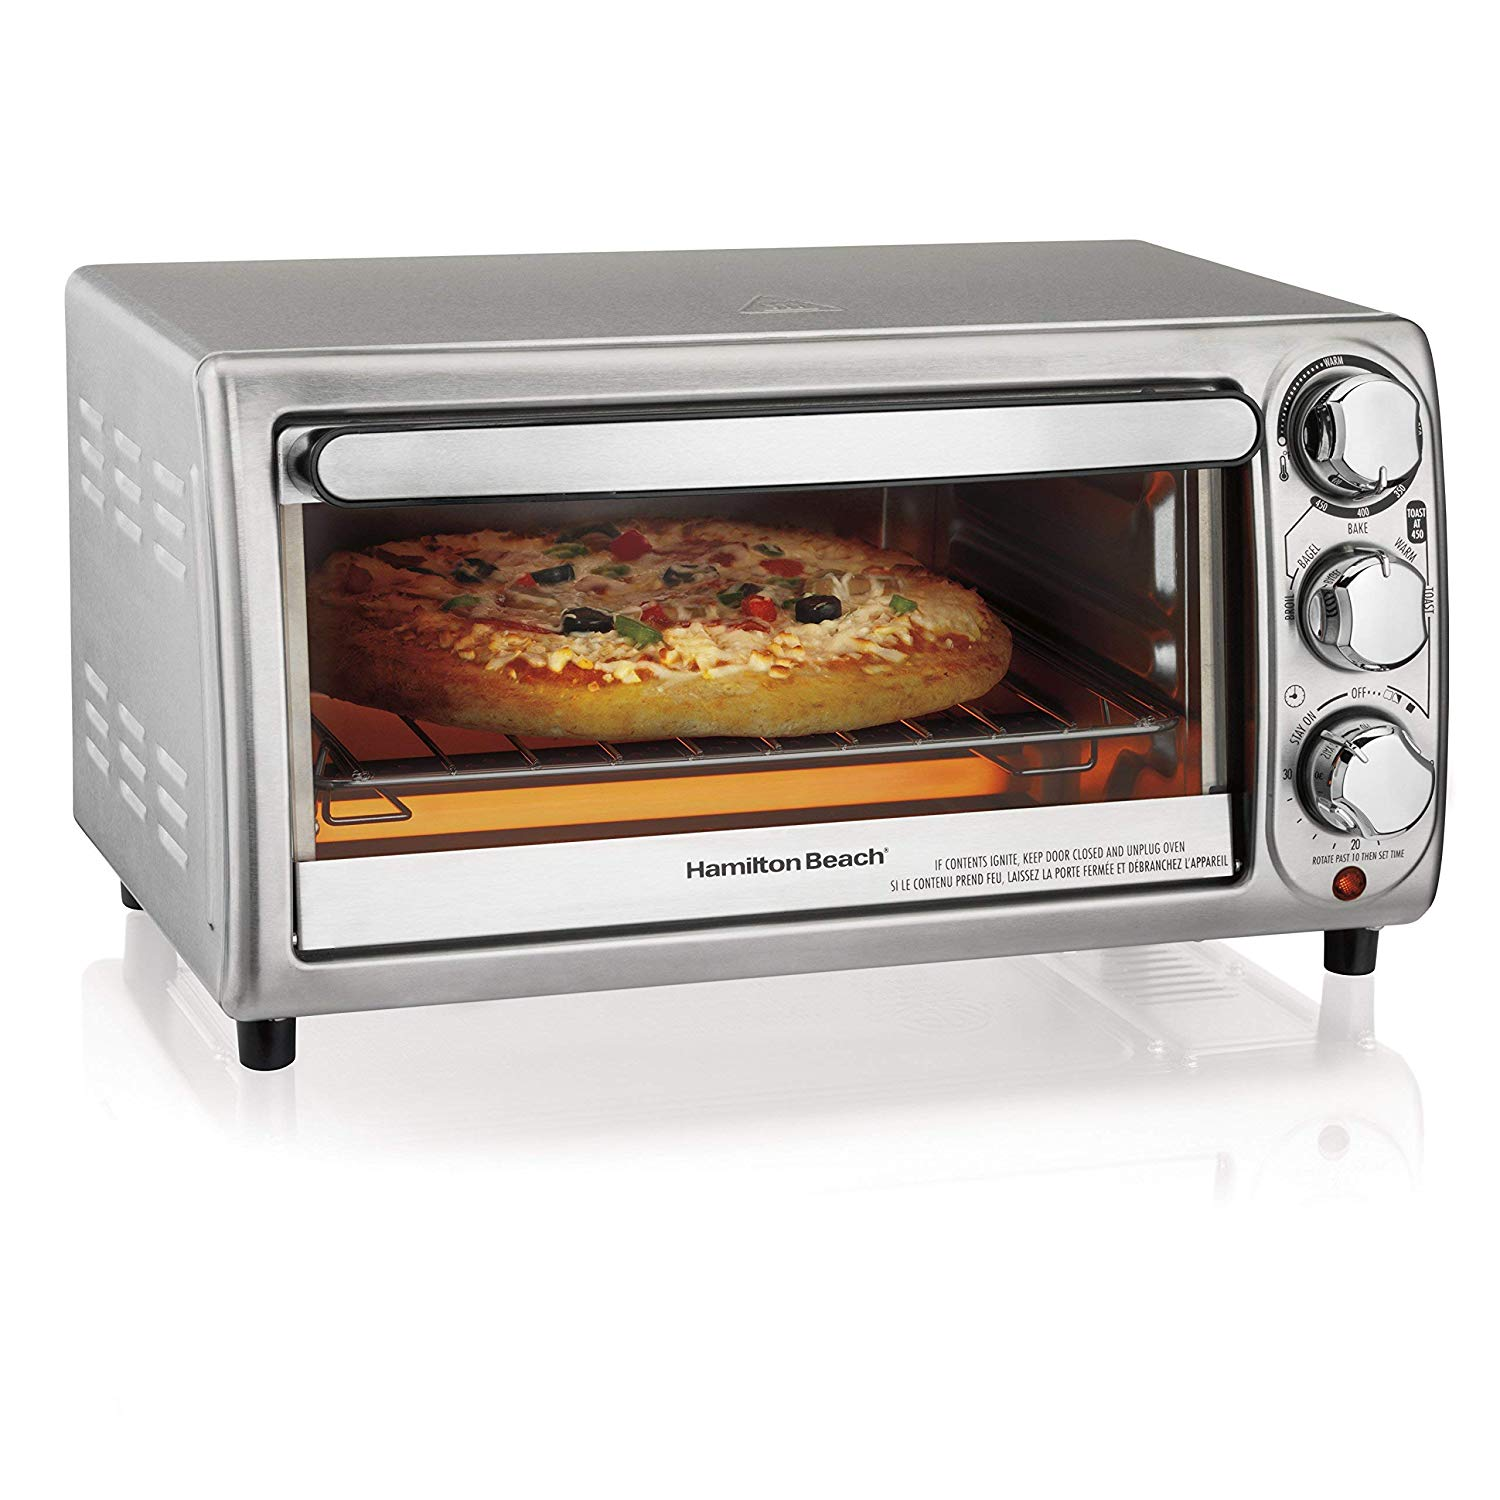 Waring WTO150 4-Slice Toaster Oven with Built-In 2-Slice Toaster Renewed